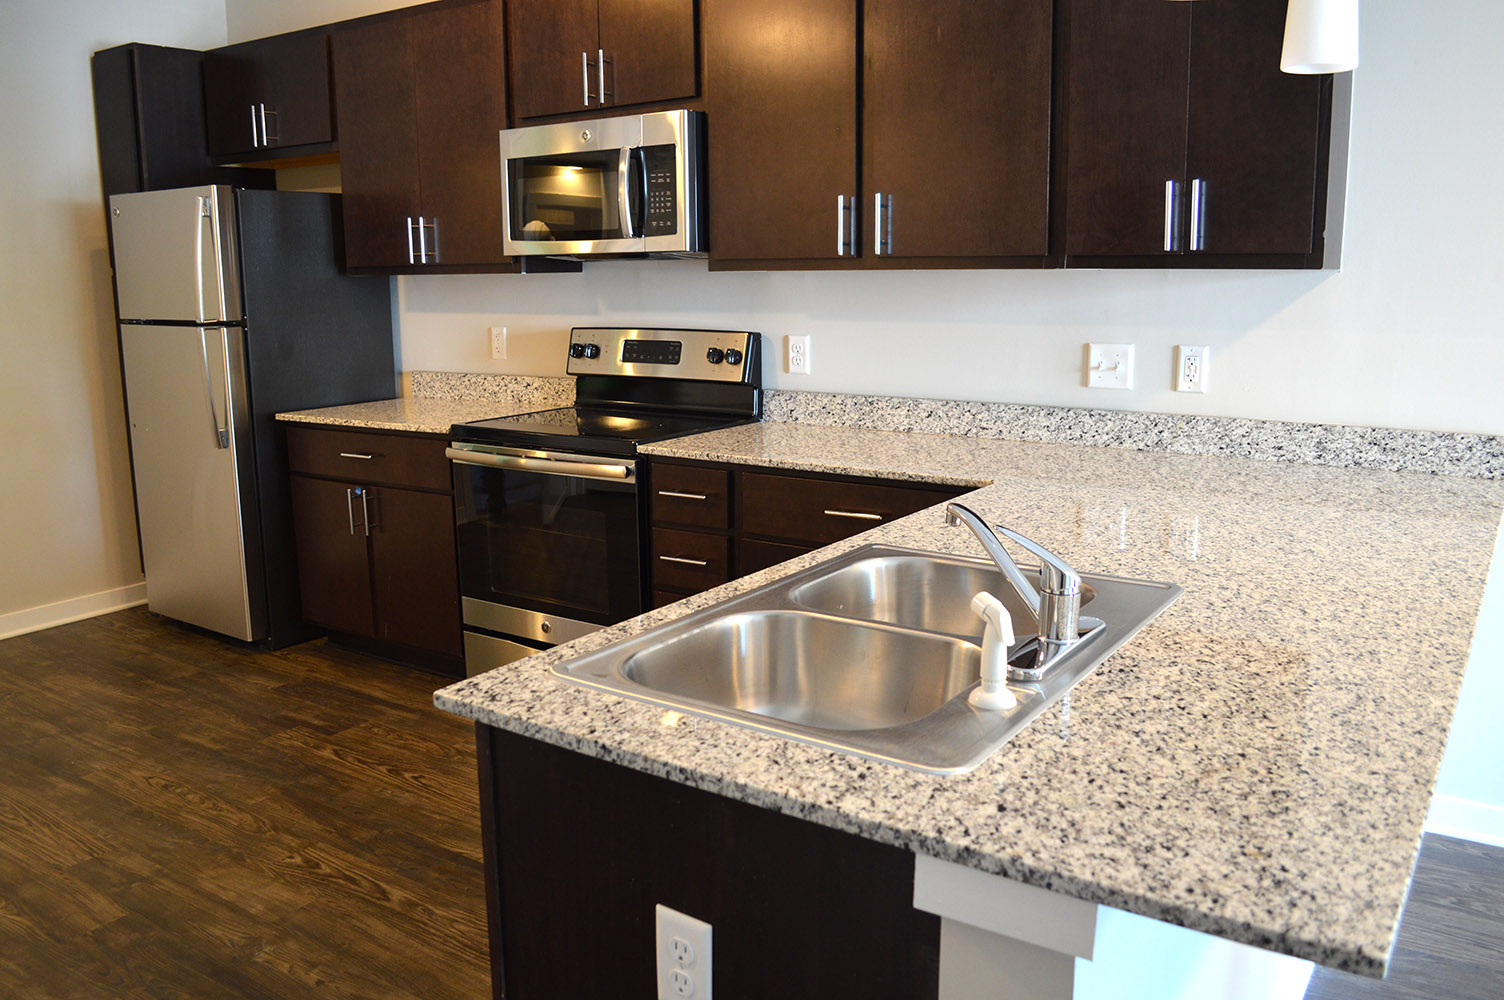 Large granite kitchen countertops really set a luxurious upscale vibe in the Main & Stone apartments